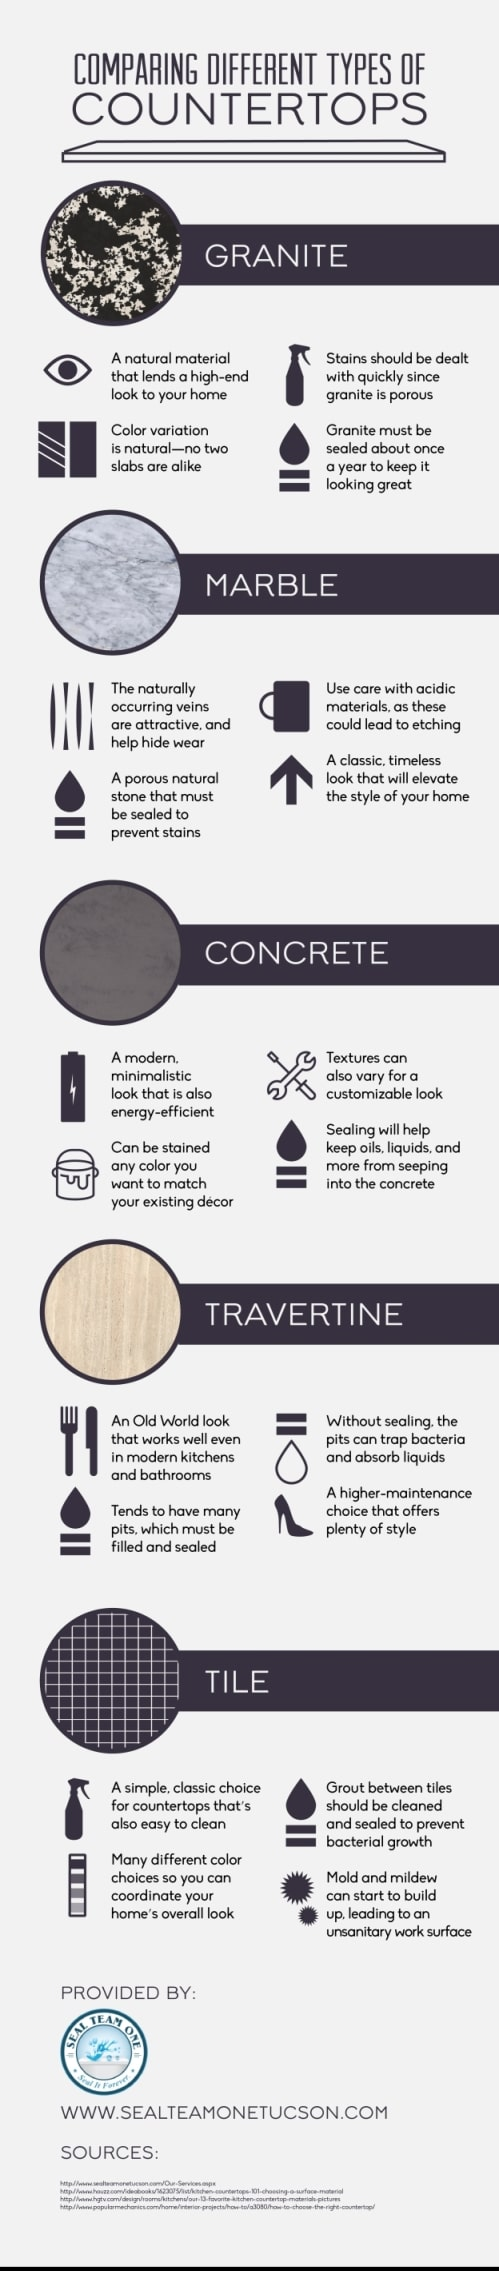 comparing different types of countertops